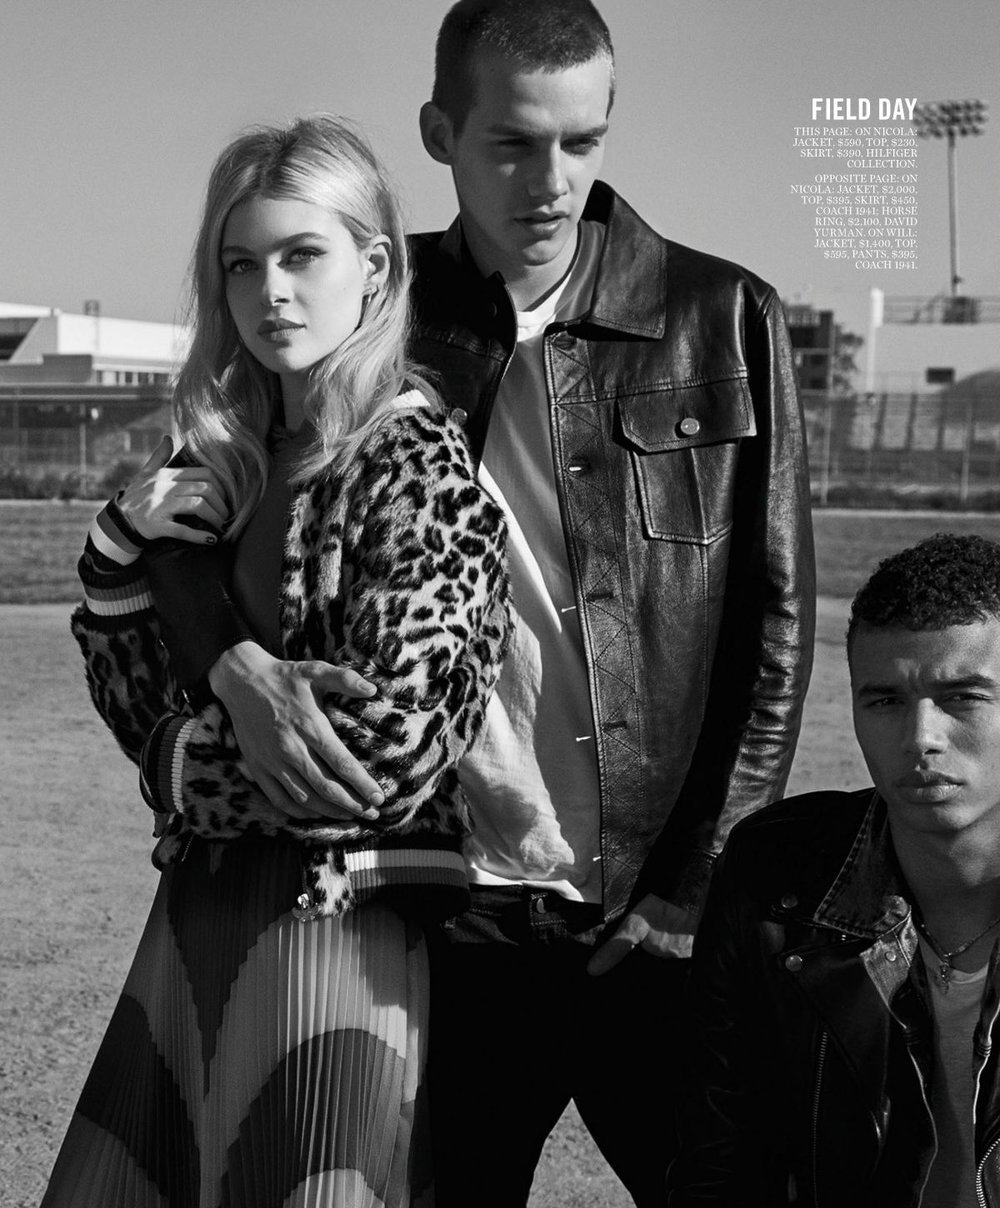 nicola-peltz-in-marie-claire-magazine-june-2017-issue_7.jpg